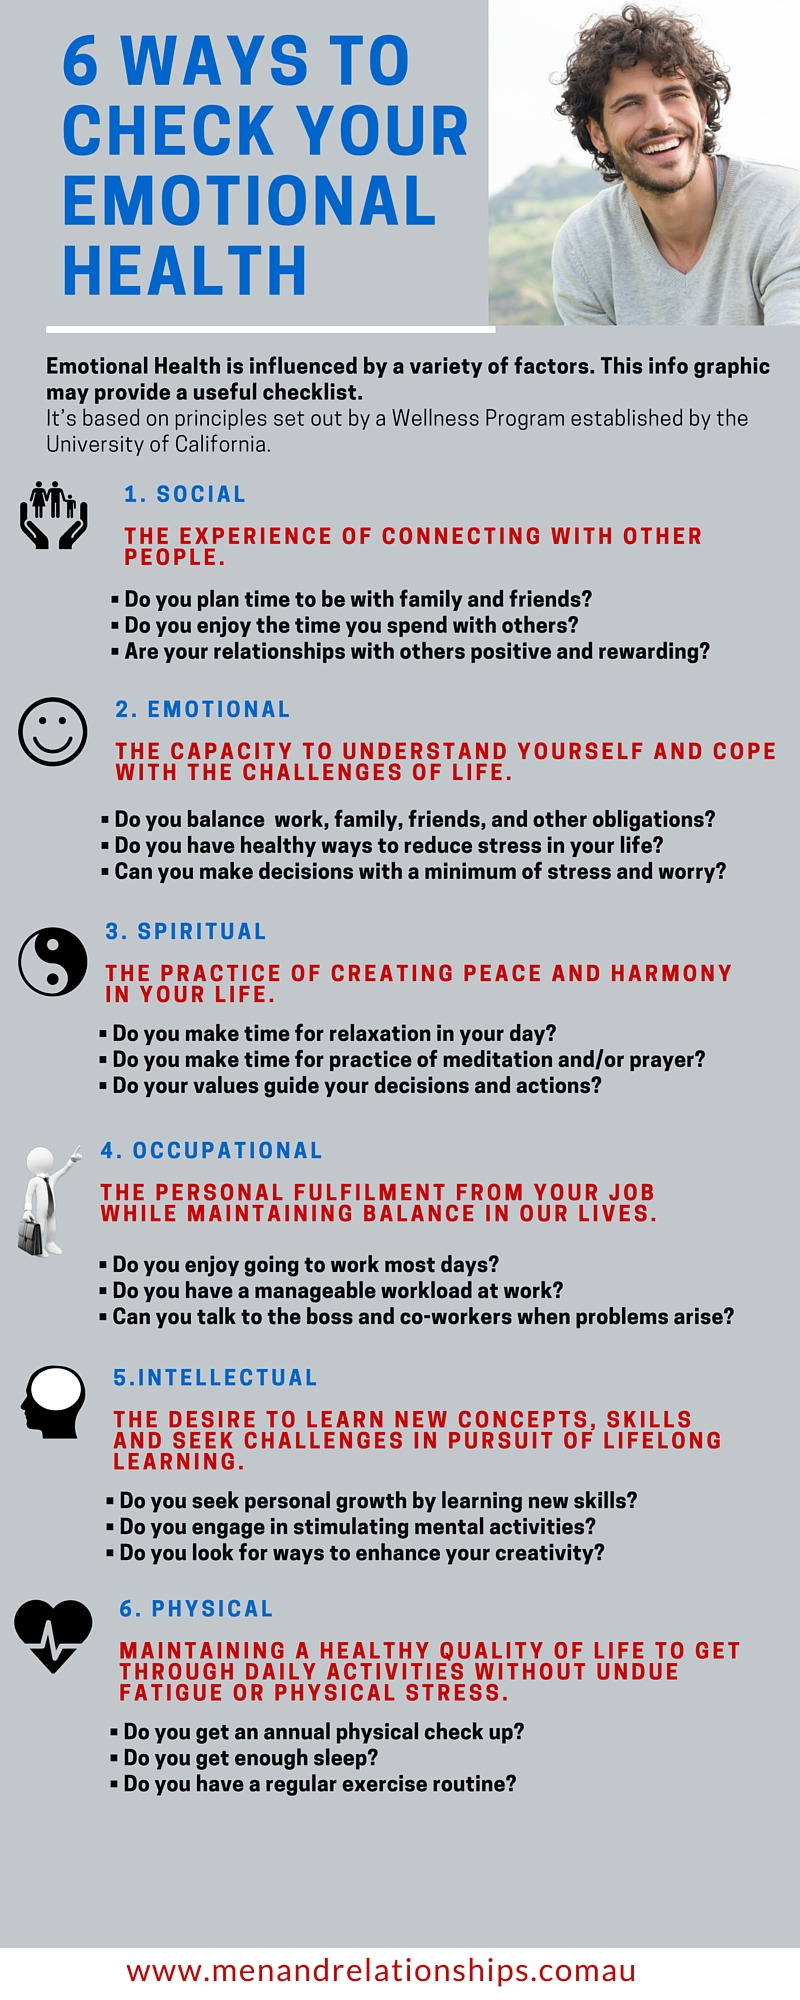 6 WAYS TO CHECK YOUR EMOTIONAL HEALTH - INFO GRAPHIC